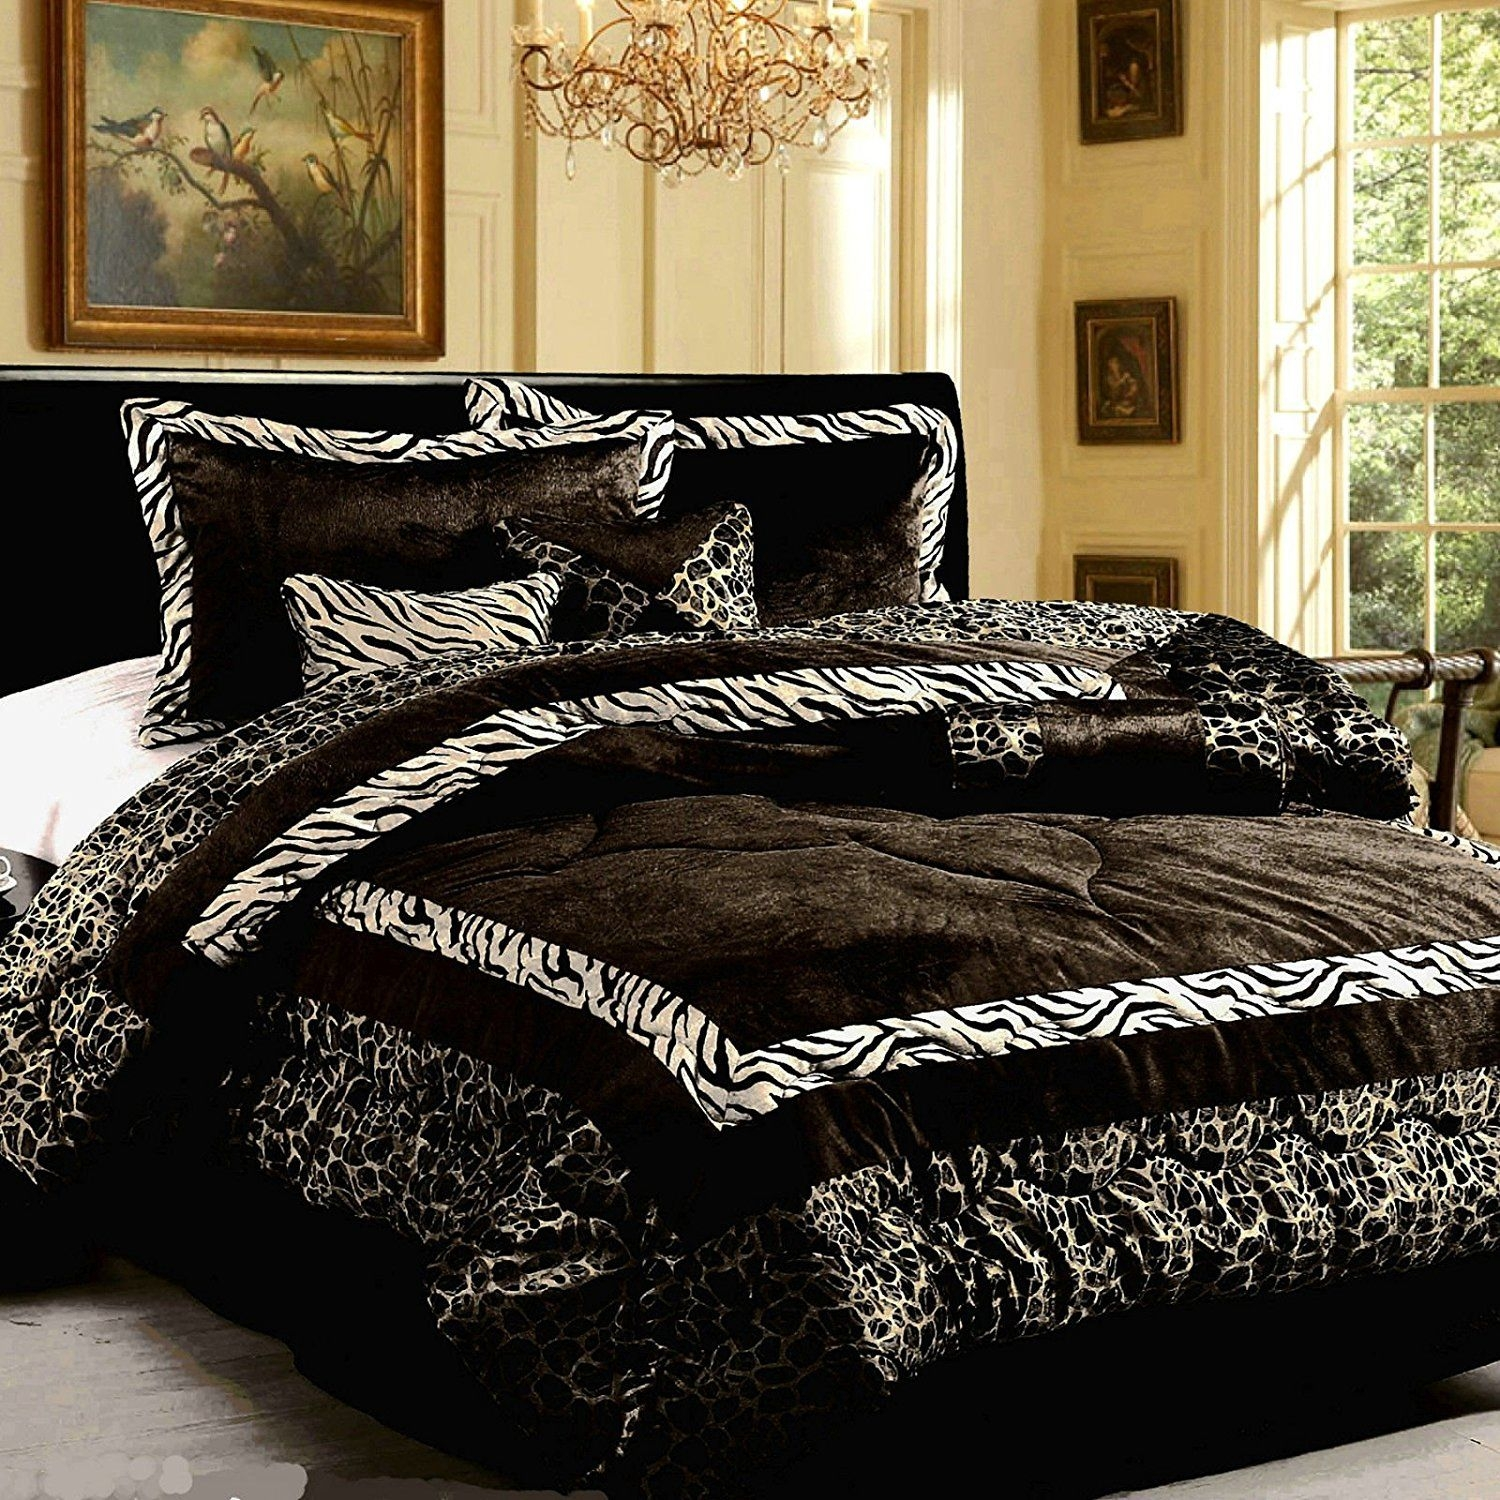 king size animal print comforter set